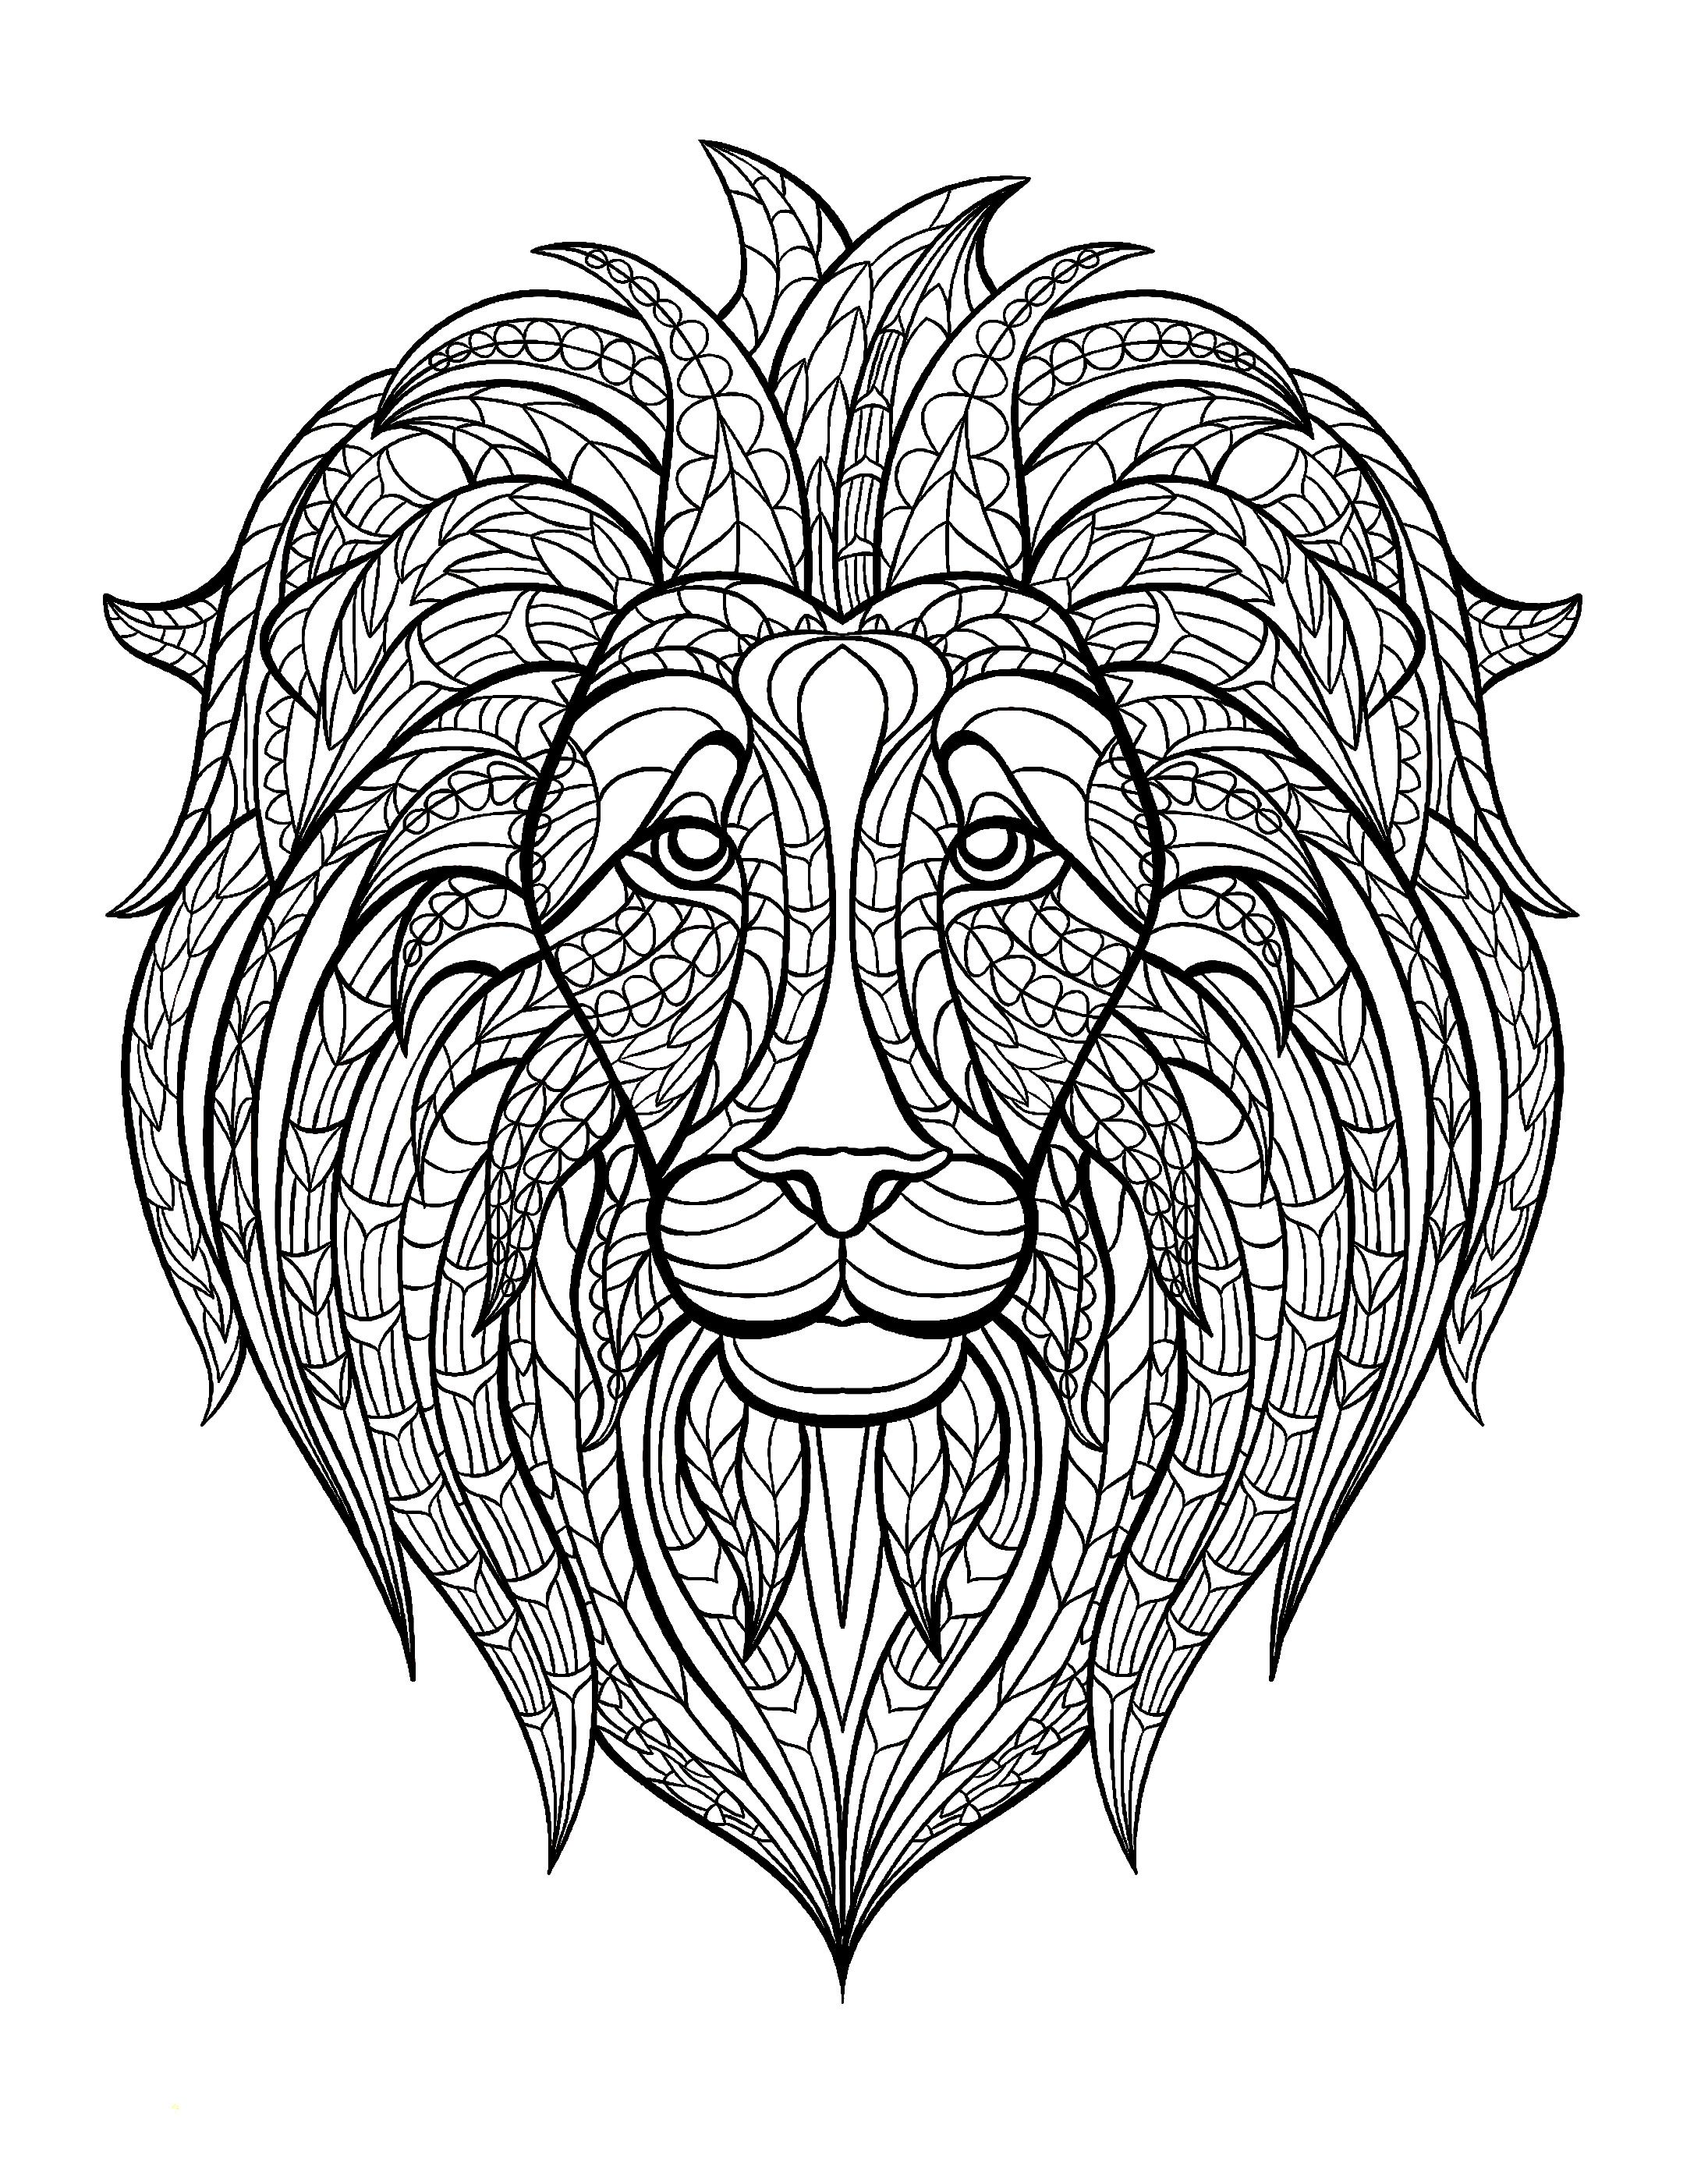 lion coloring pages for adults Pin by DeAnna Lea on Color Animal Pages | Adult coloring pages  lion coloring pages for adults